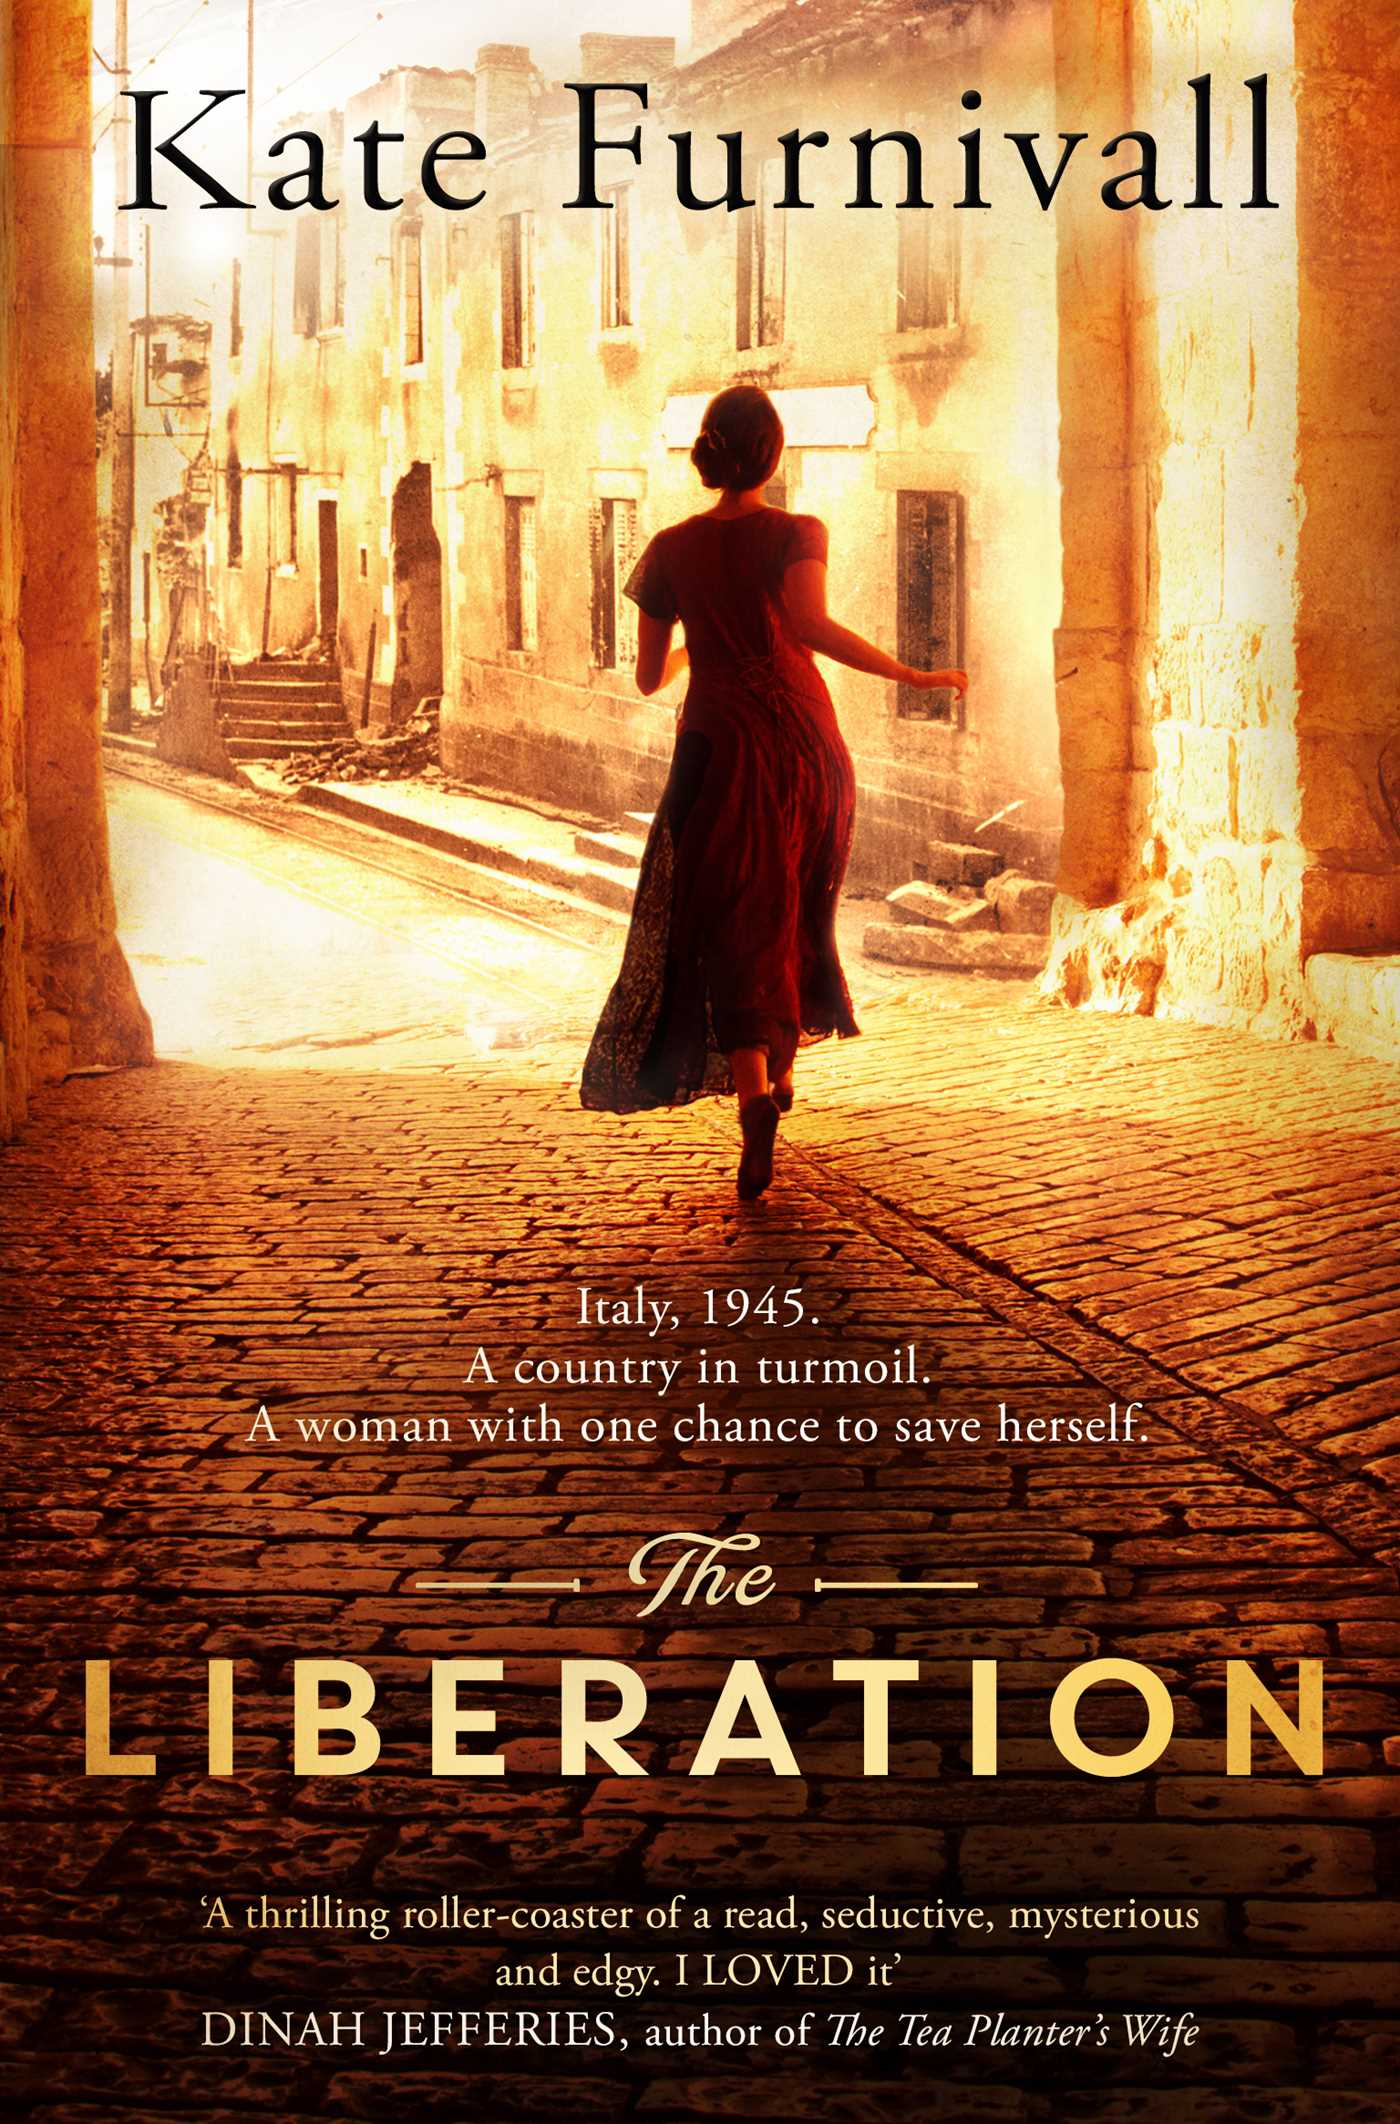 The liberation 9781471155550 hr